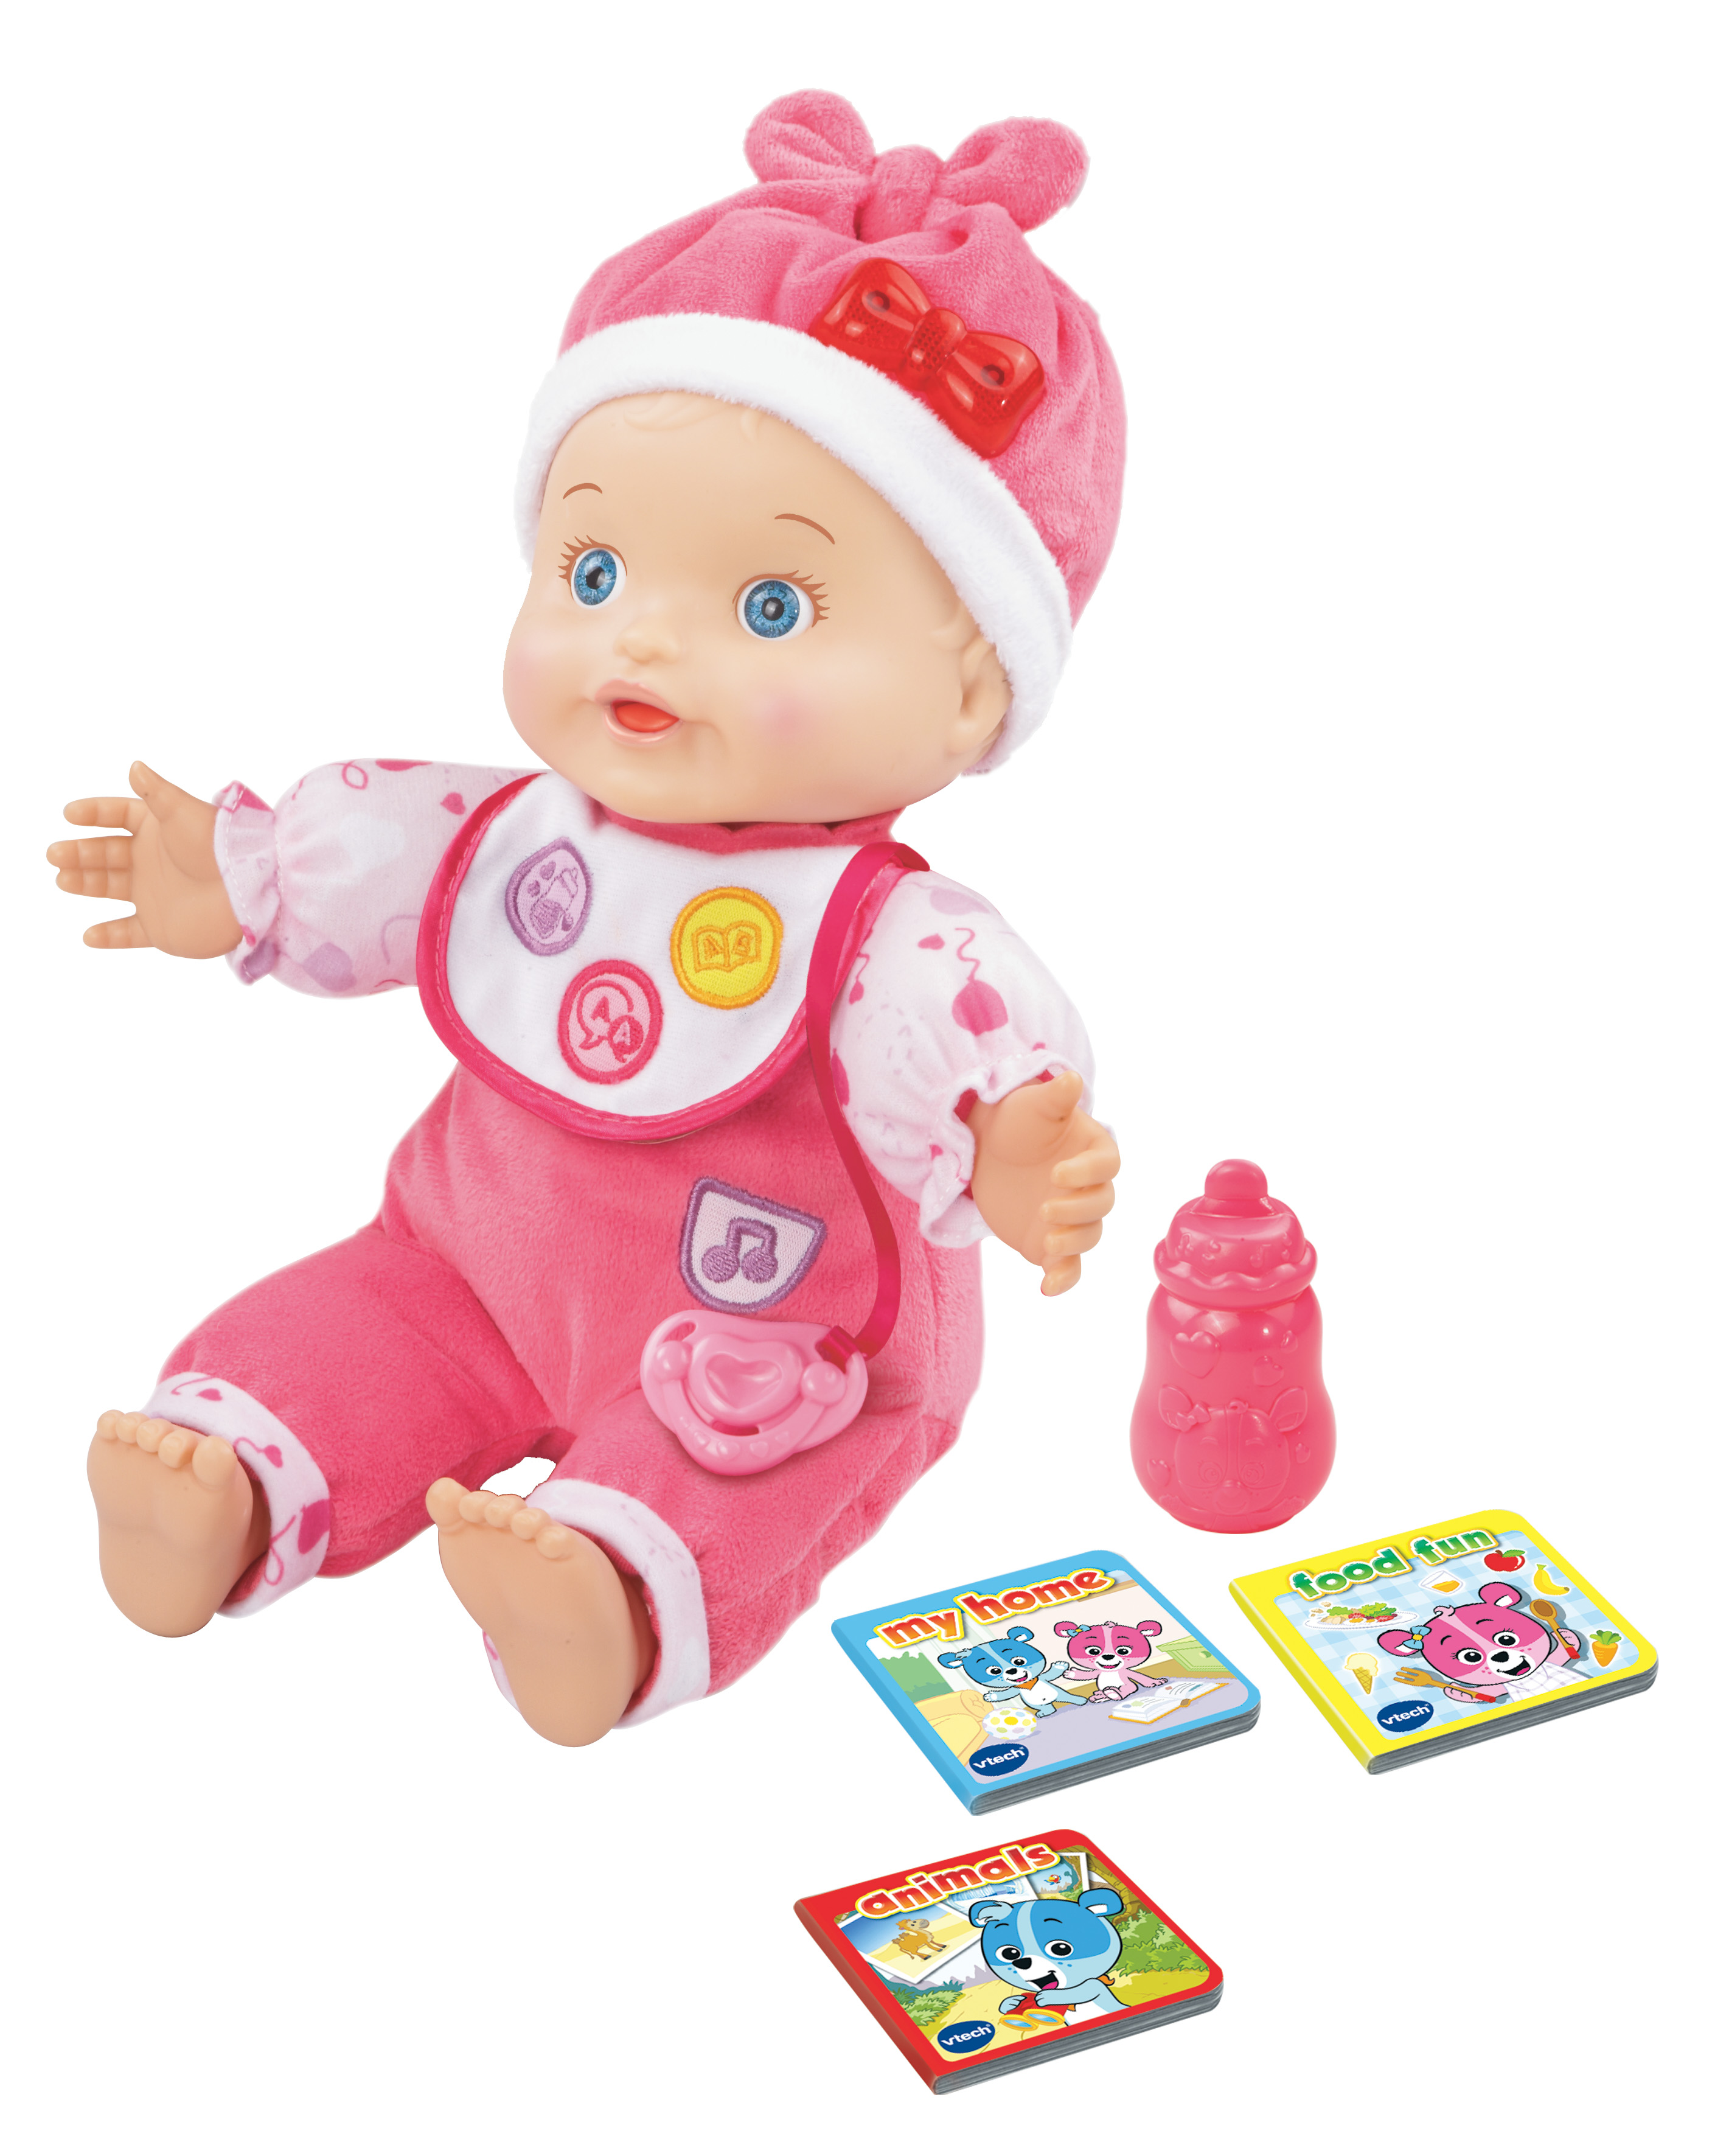 Baby Amaze Learn to Talk & Read Baby Doll